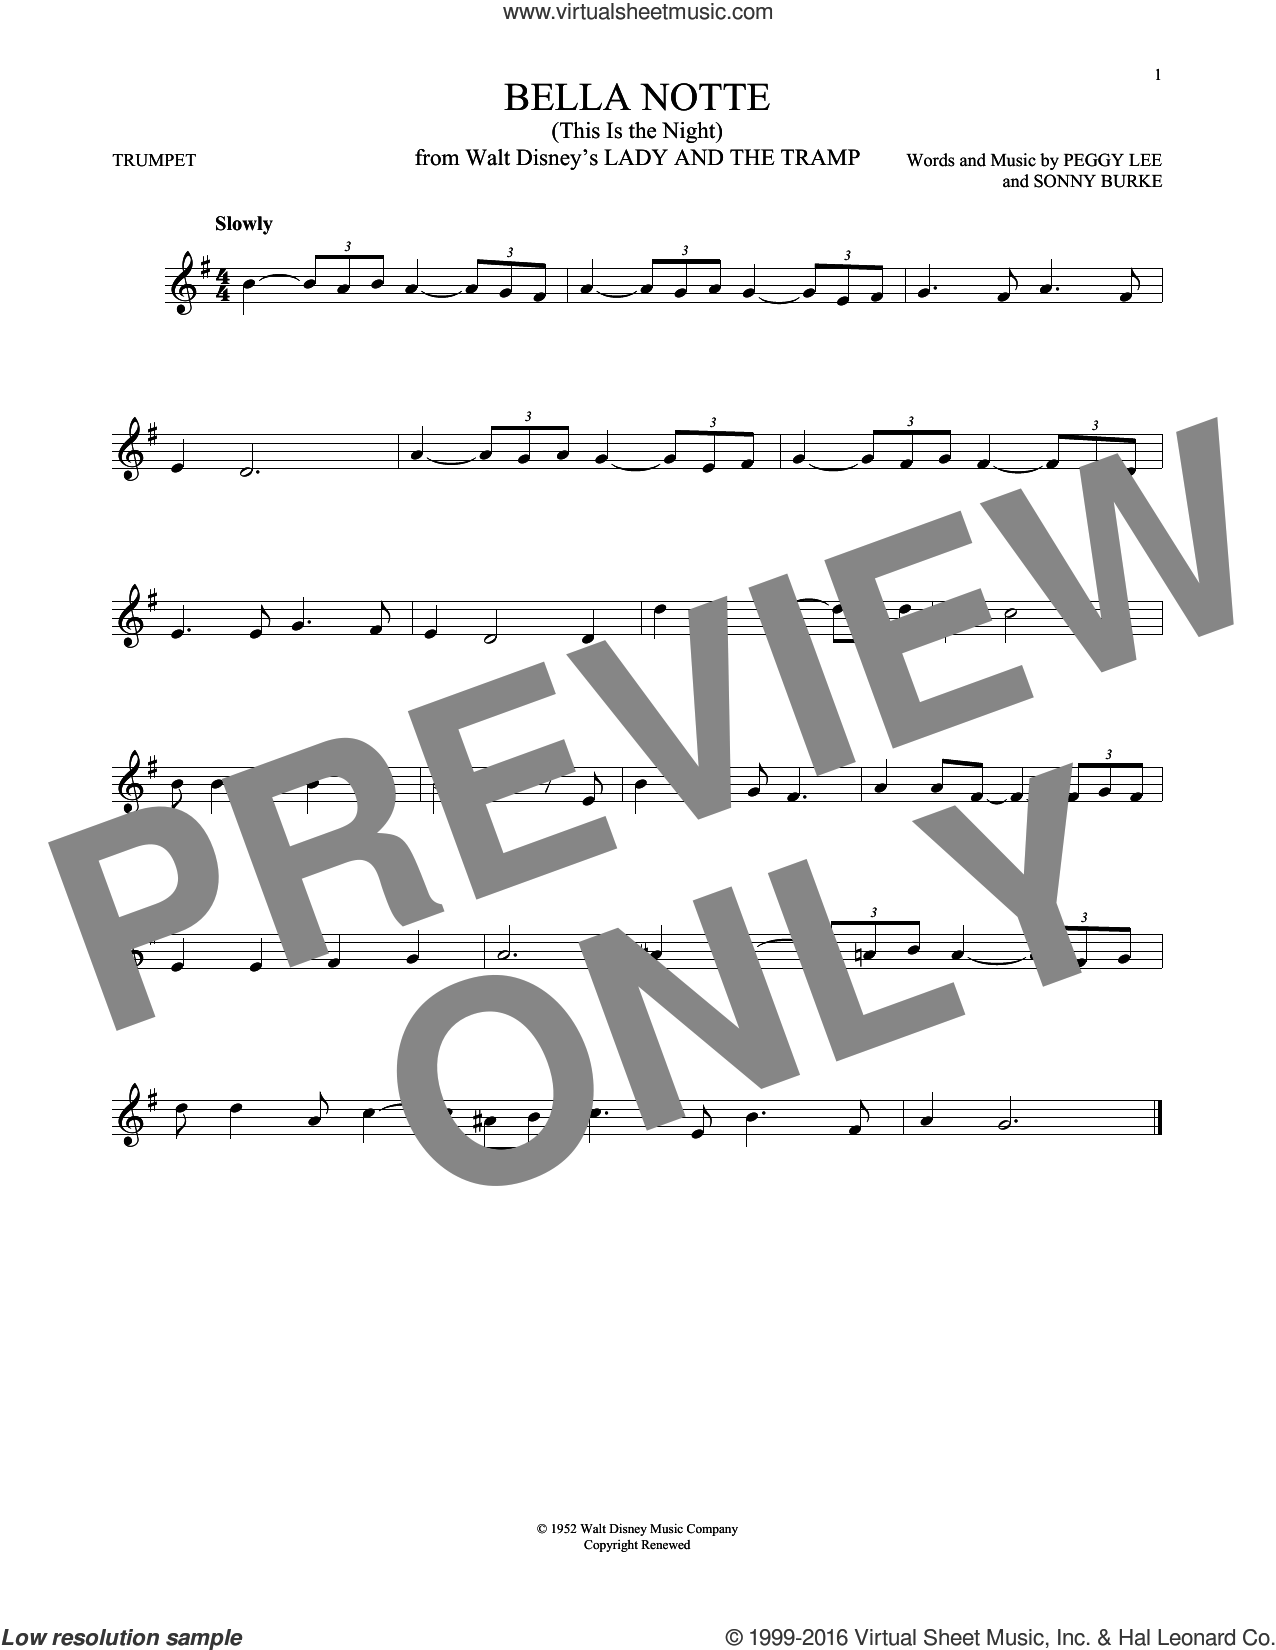 Bella Notte sheet music for trumpet solo by Sonny Burke